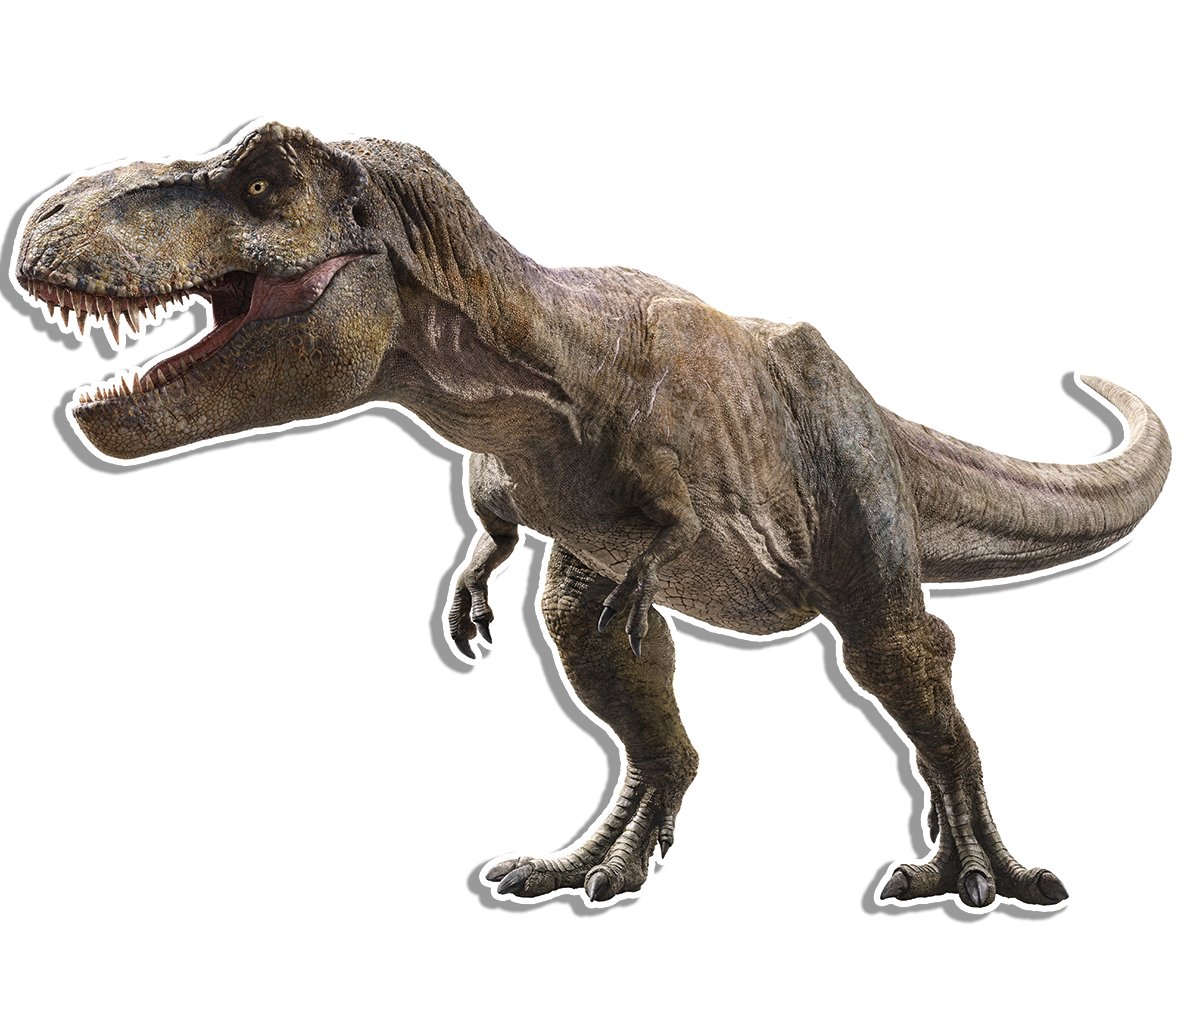 Trex png kid. Dinosaur protection group tyrant